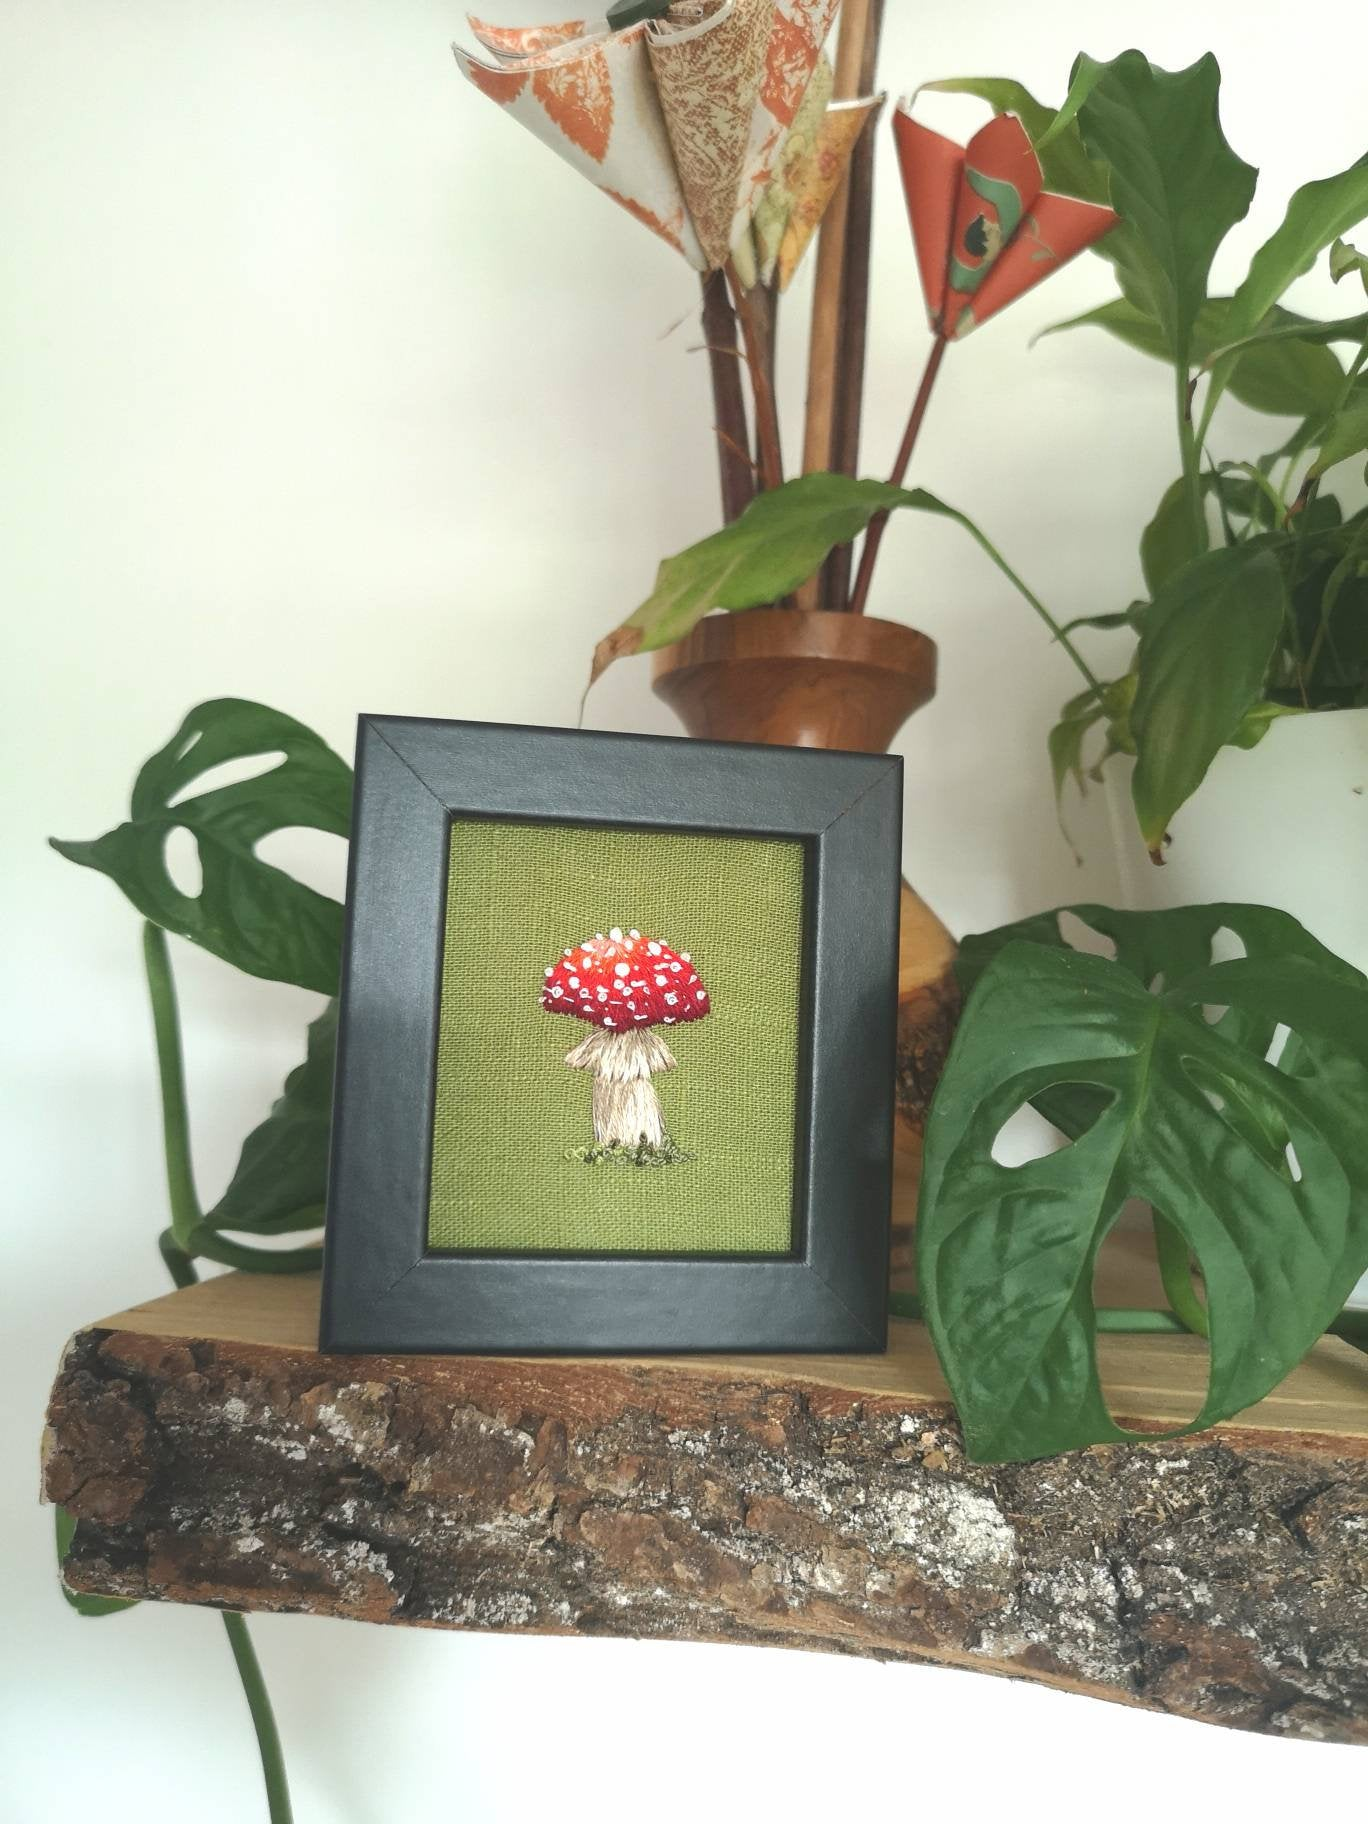 Made to order - Framed Handmade Embroidered Mushroom Toadstool on Green Linen